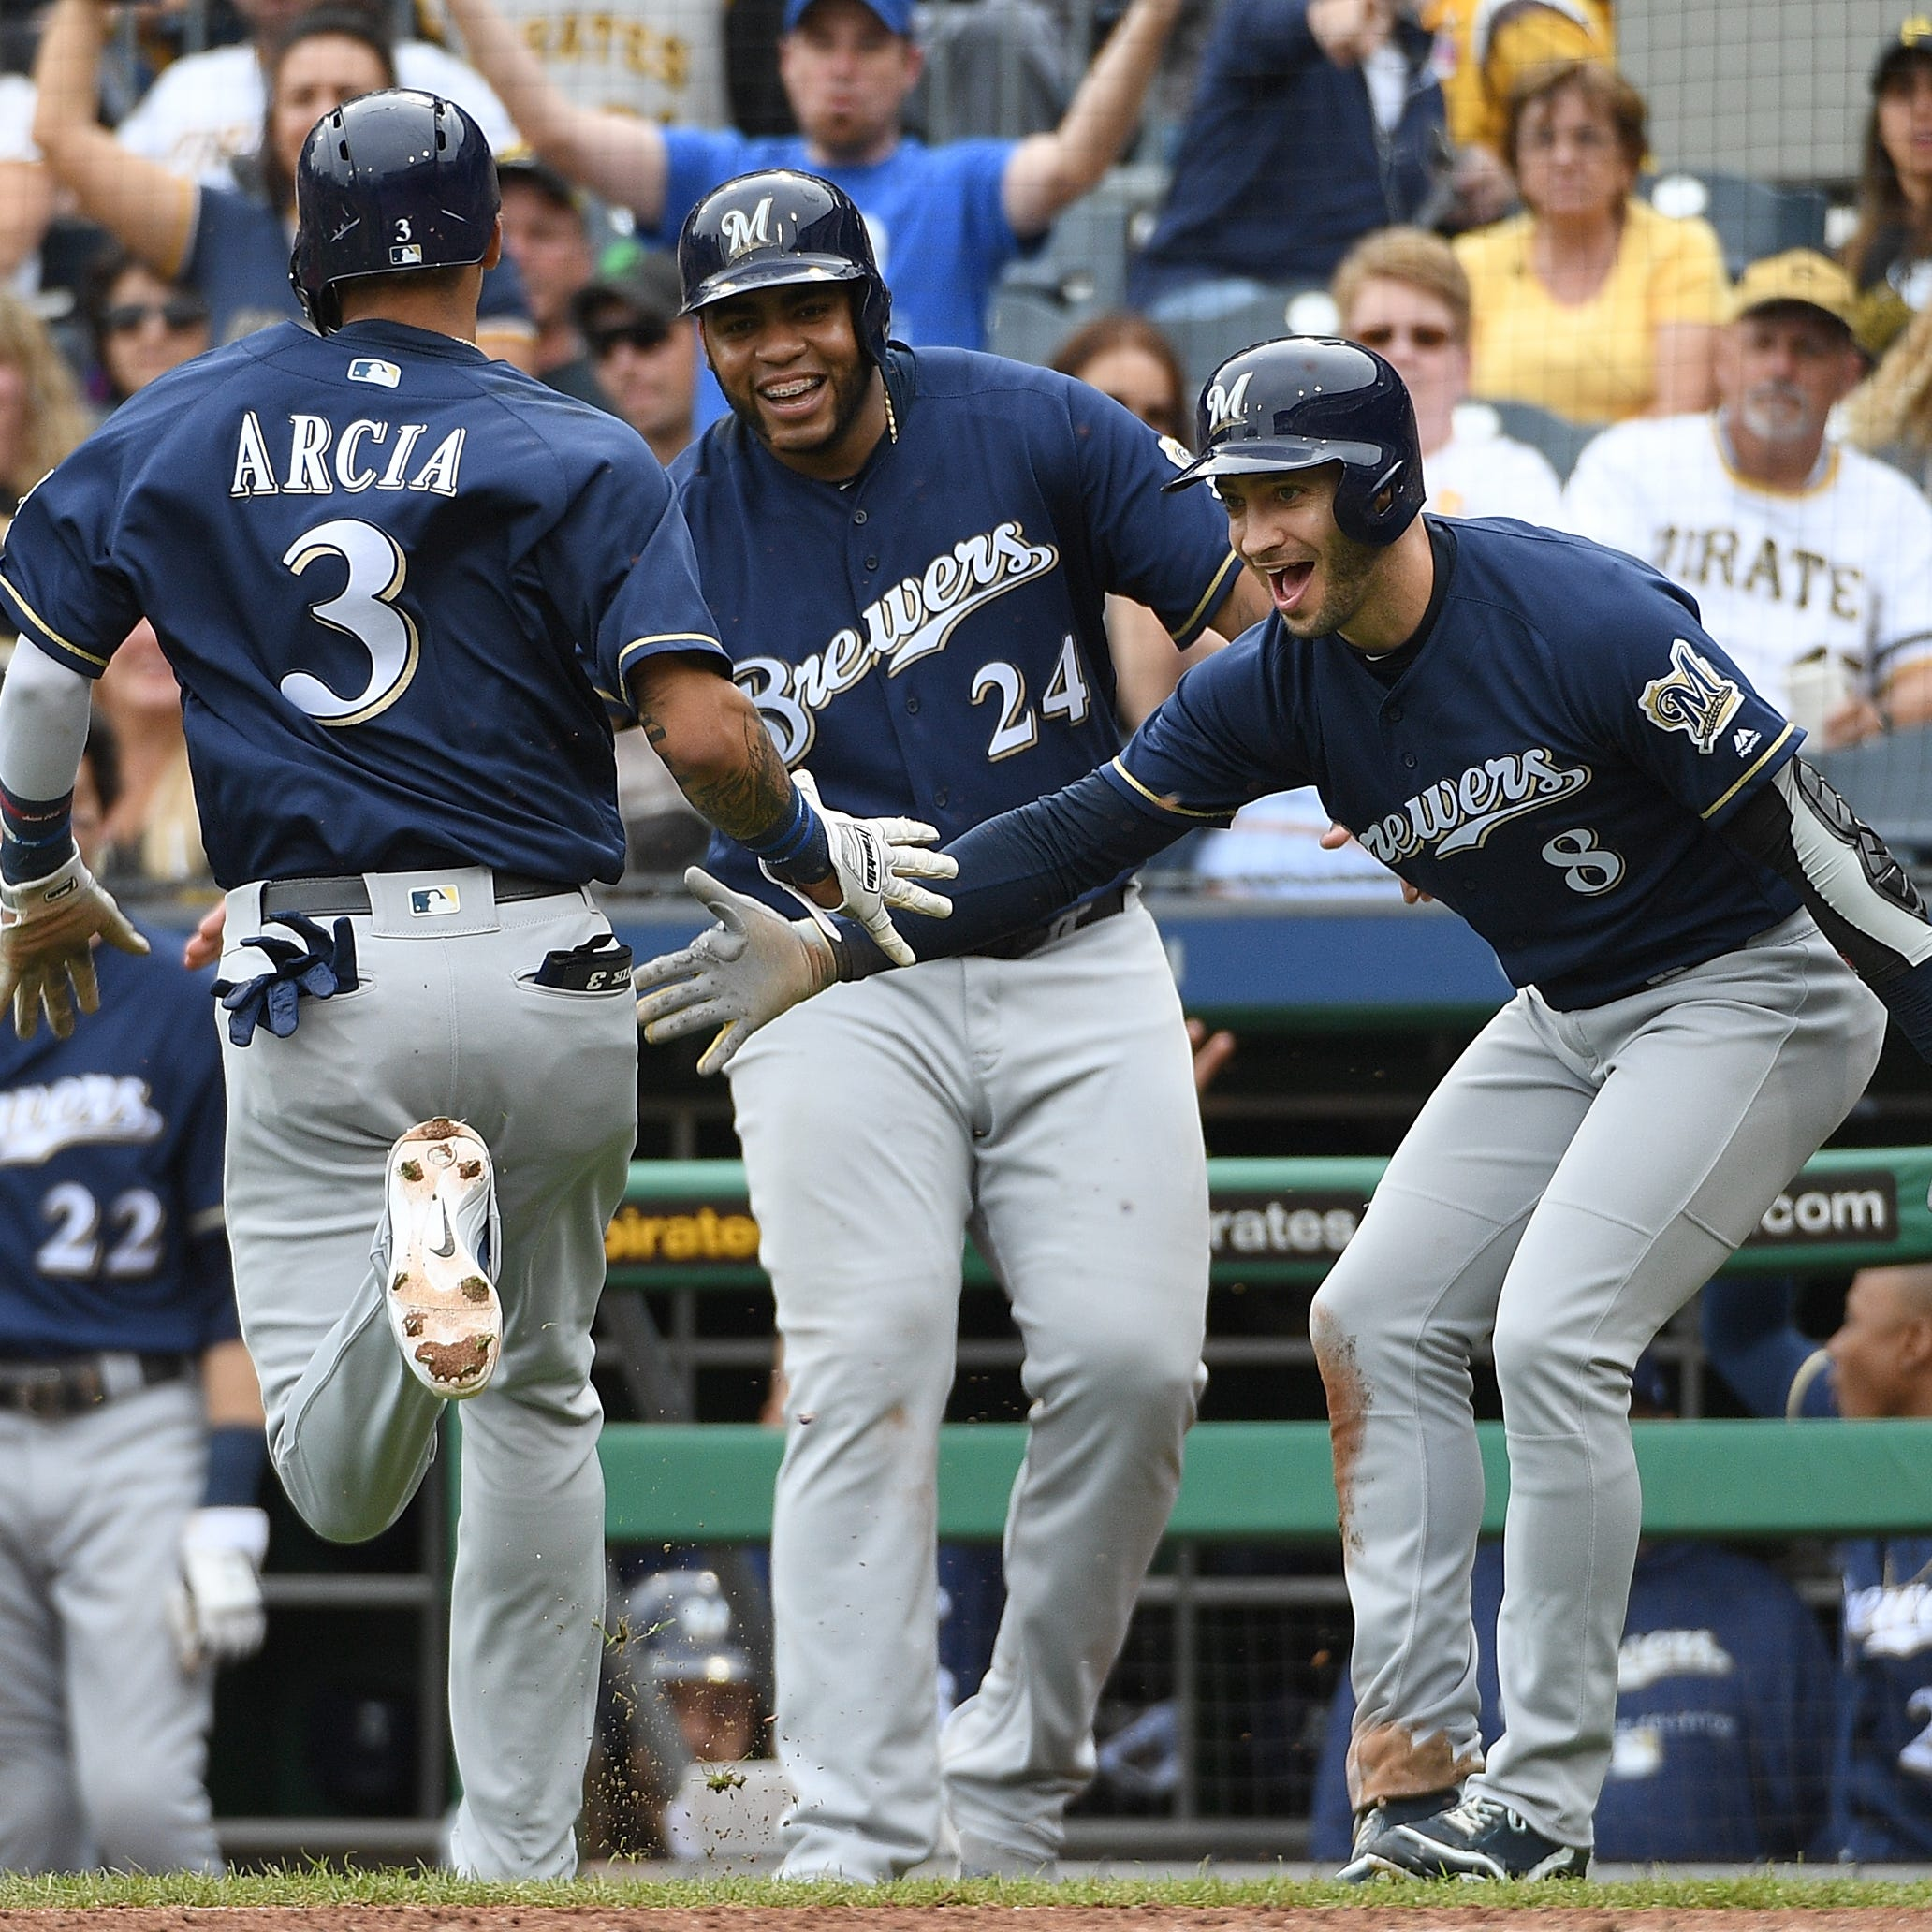 Brewers 13, Pirates 6: Offense provides a much-needed laugher